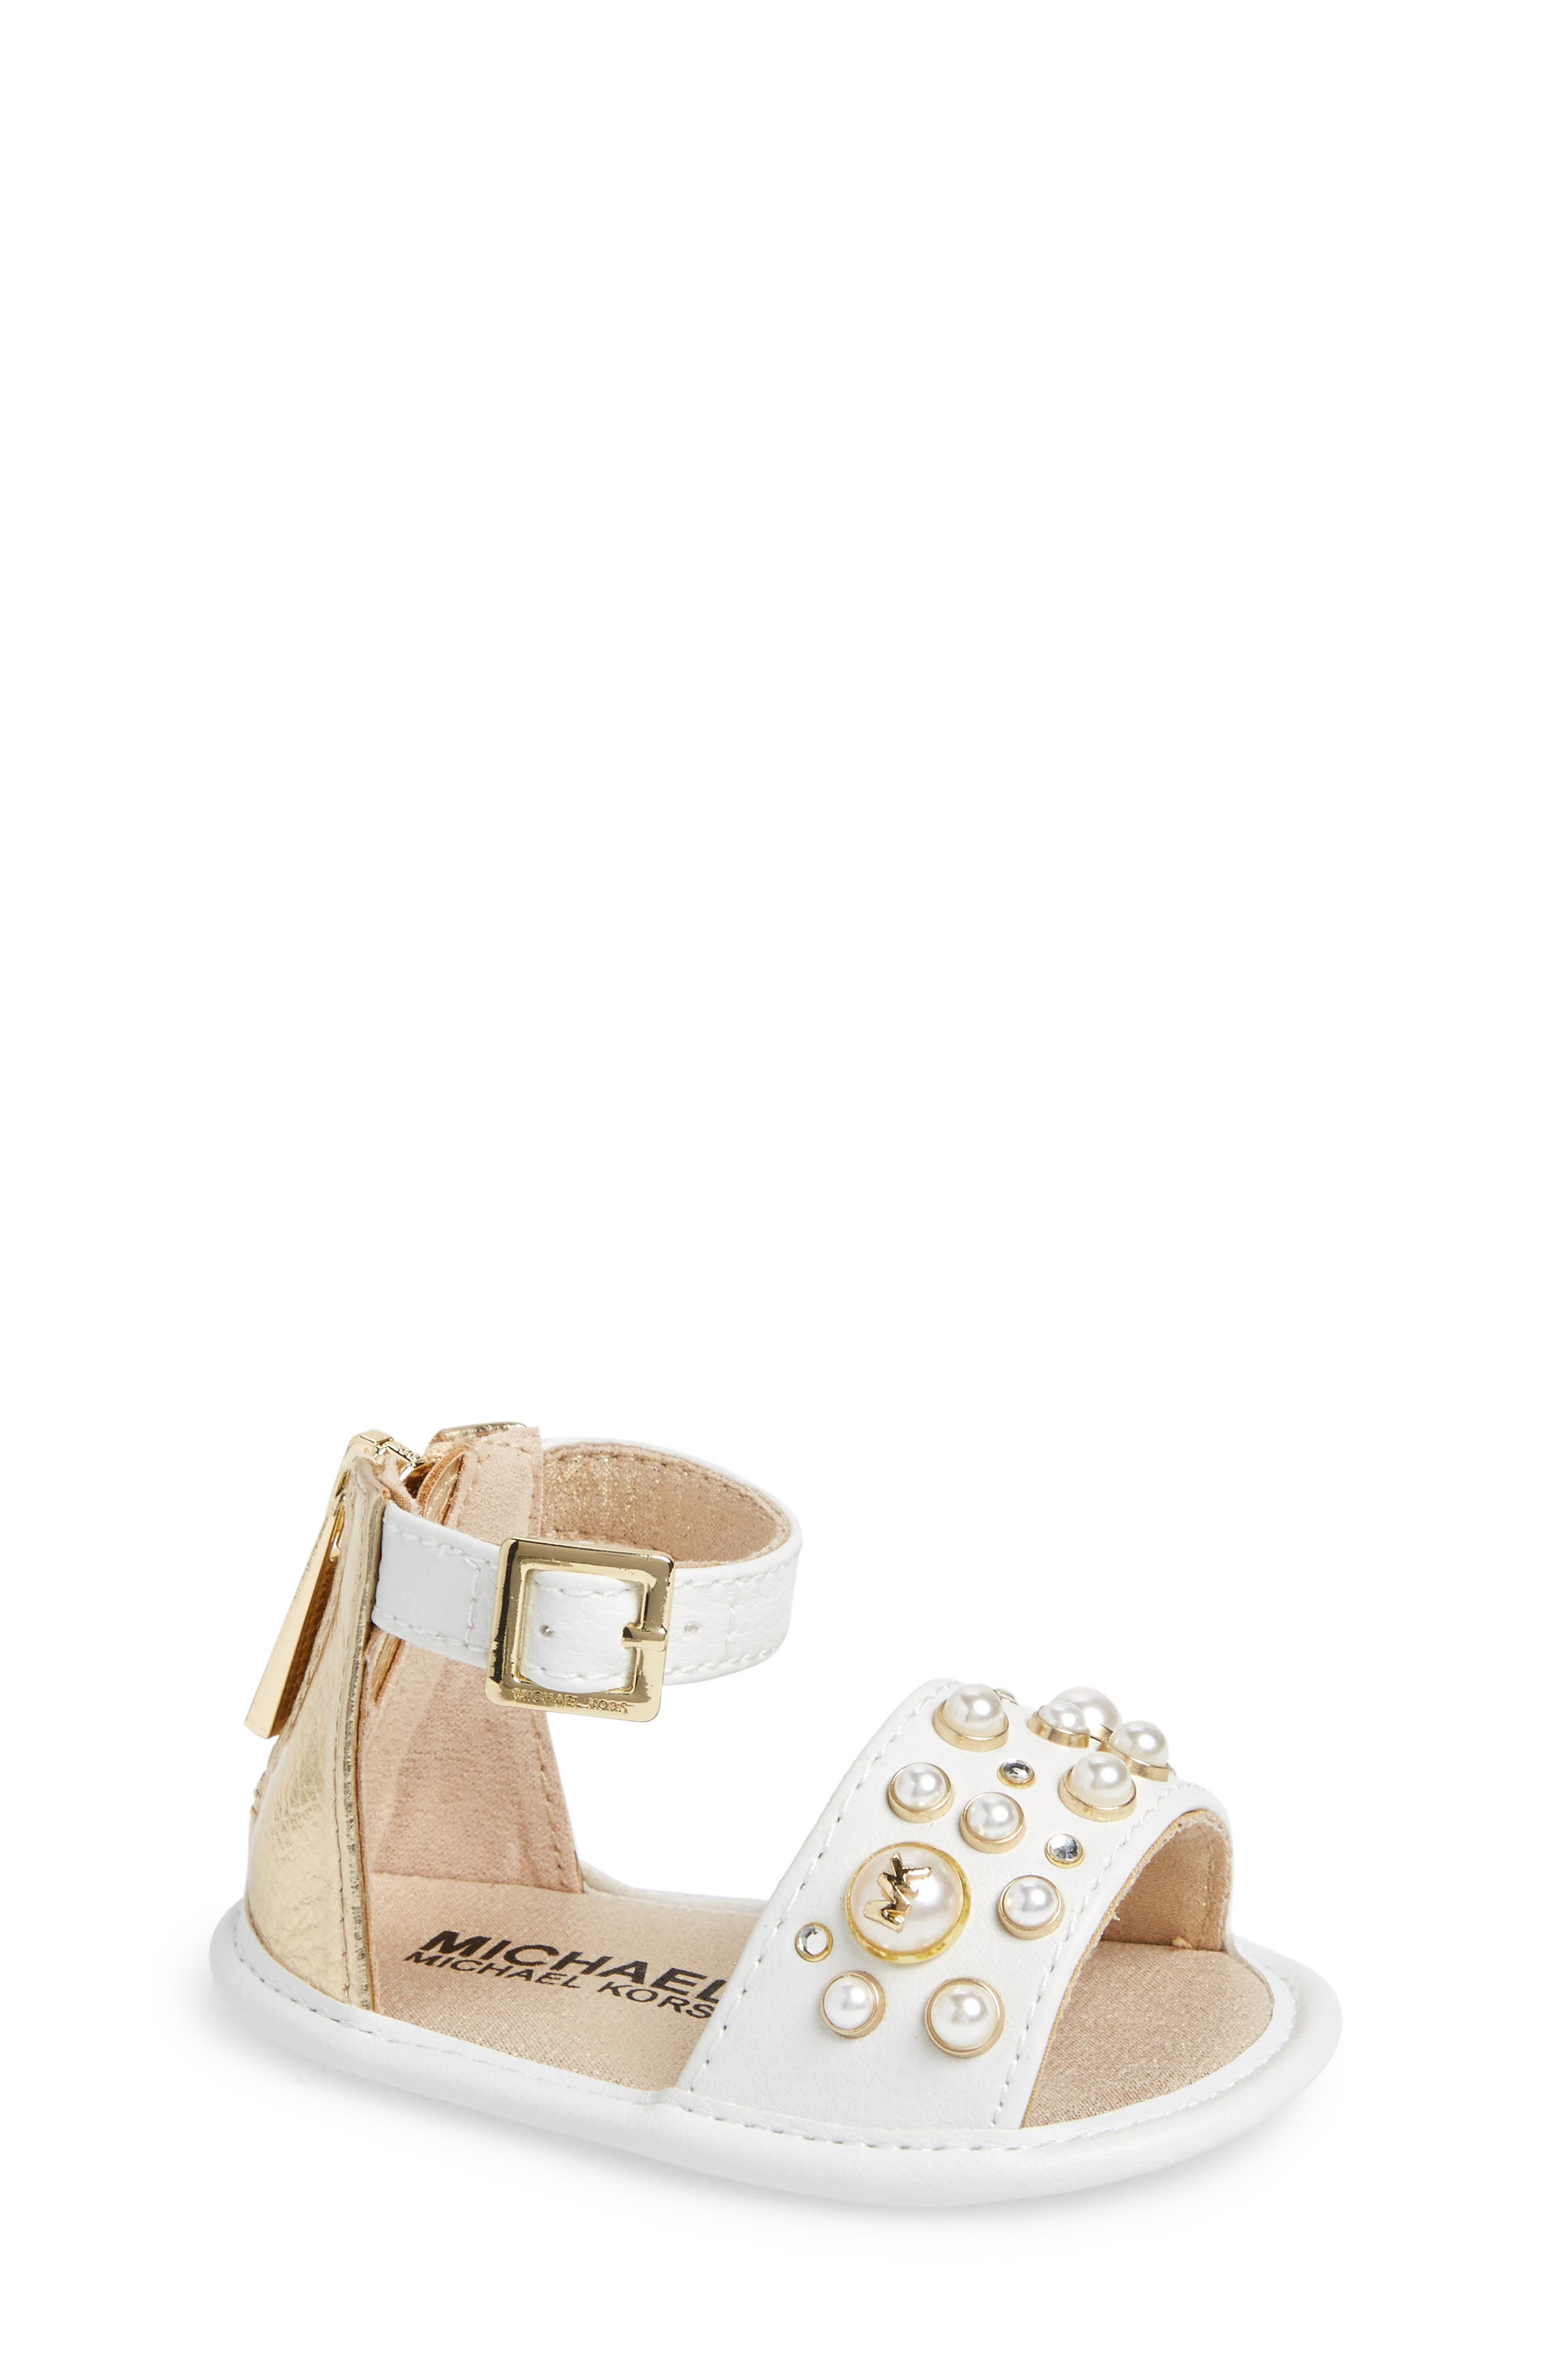 Pennie Sandal,                         Main,                         color, 100